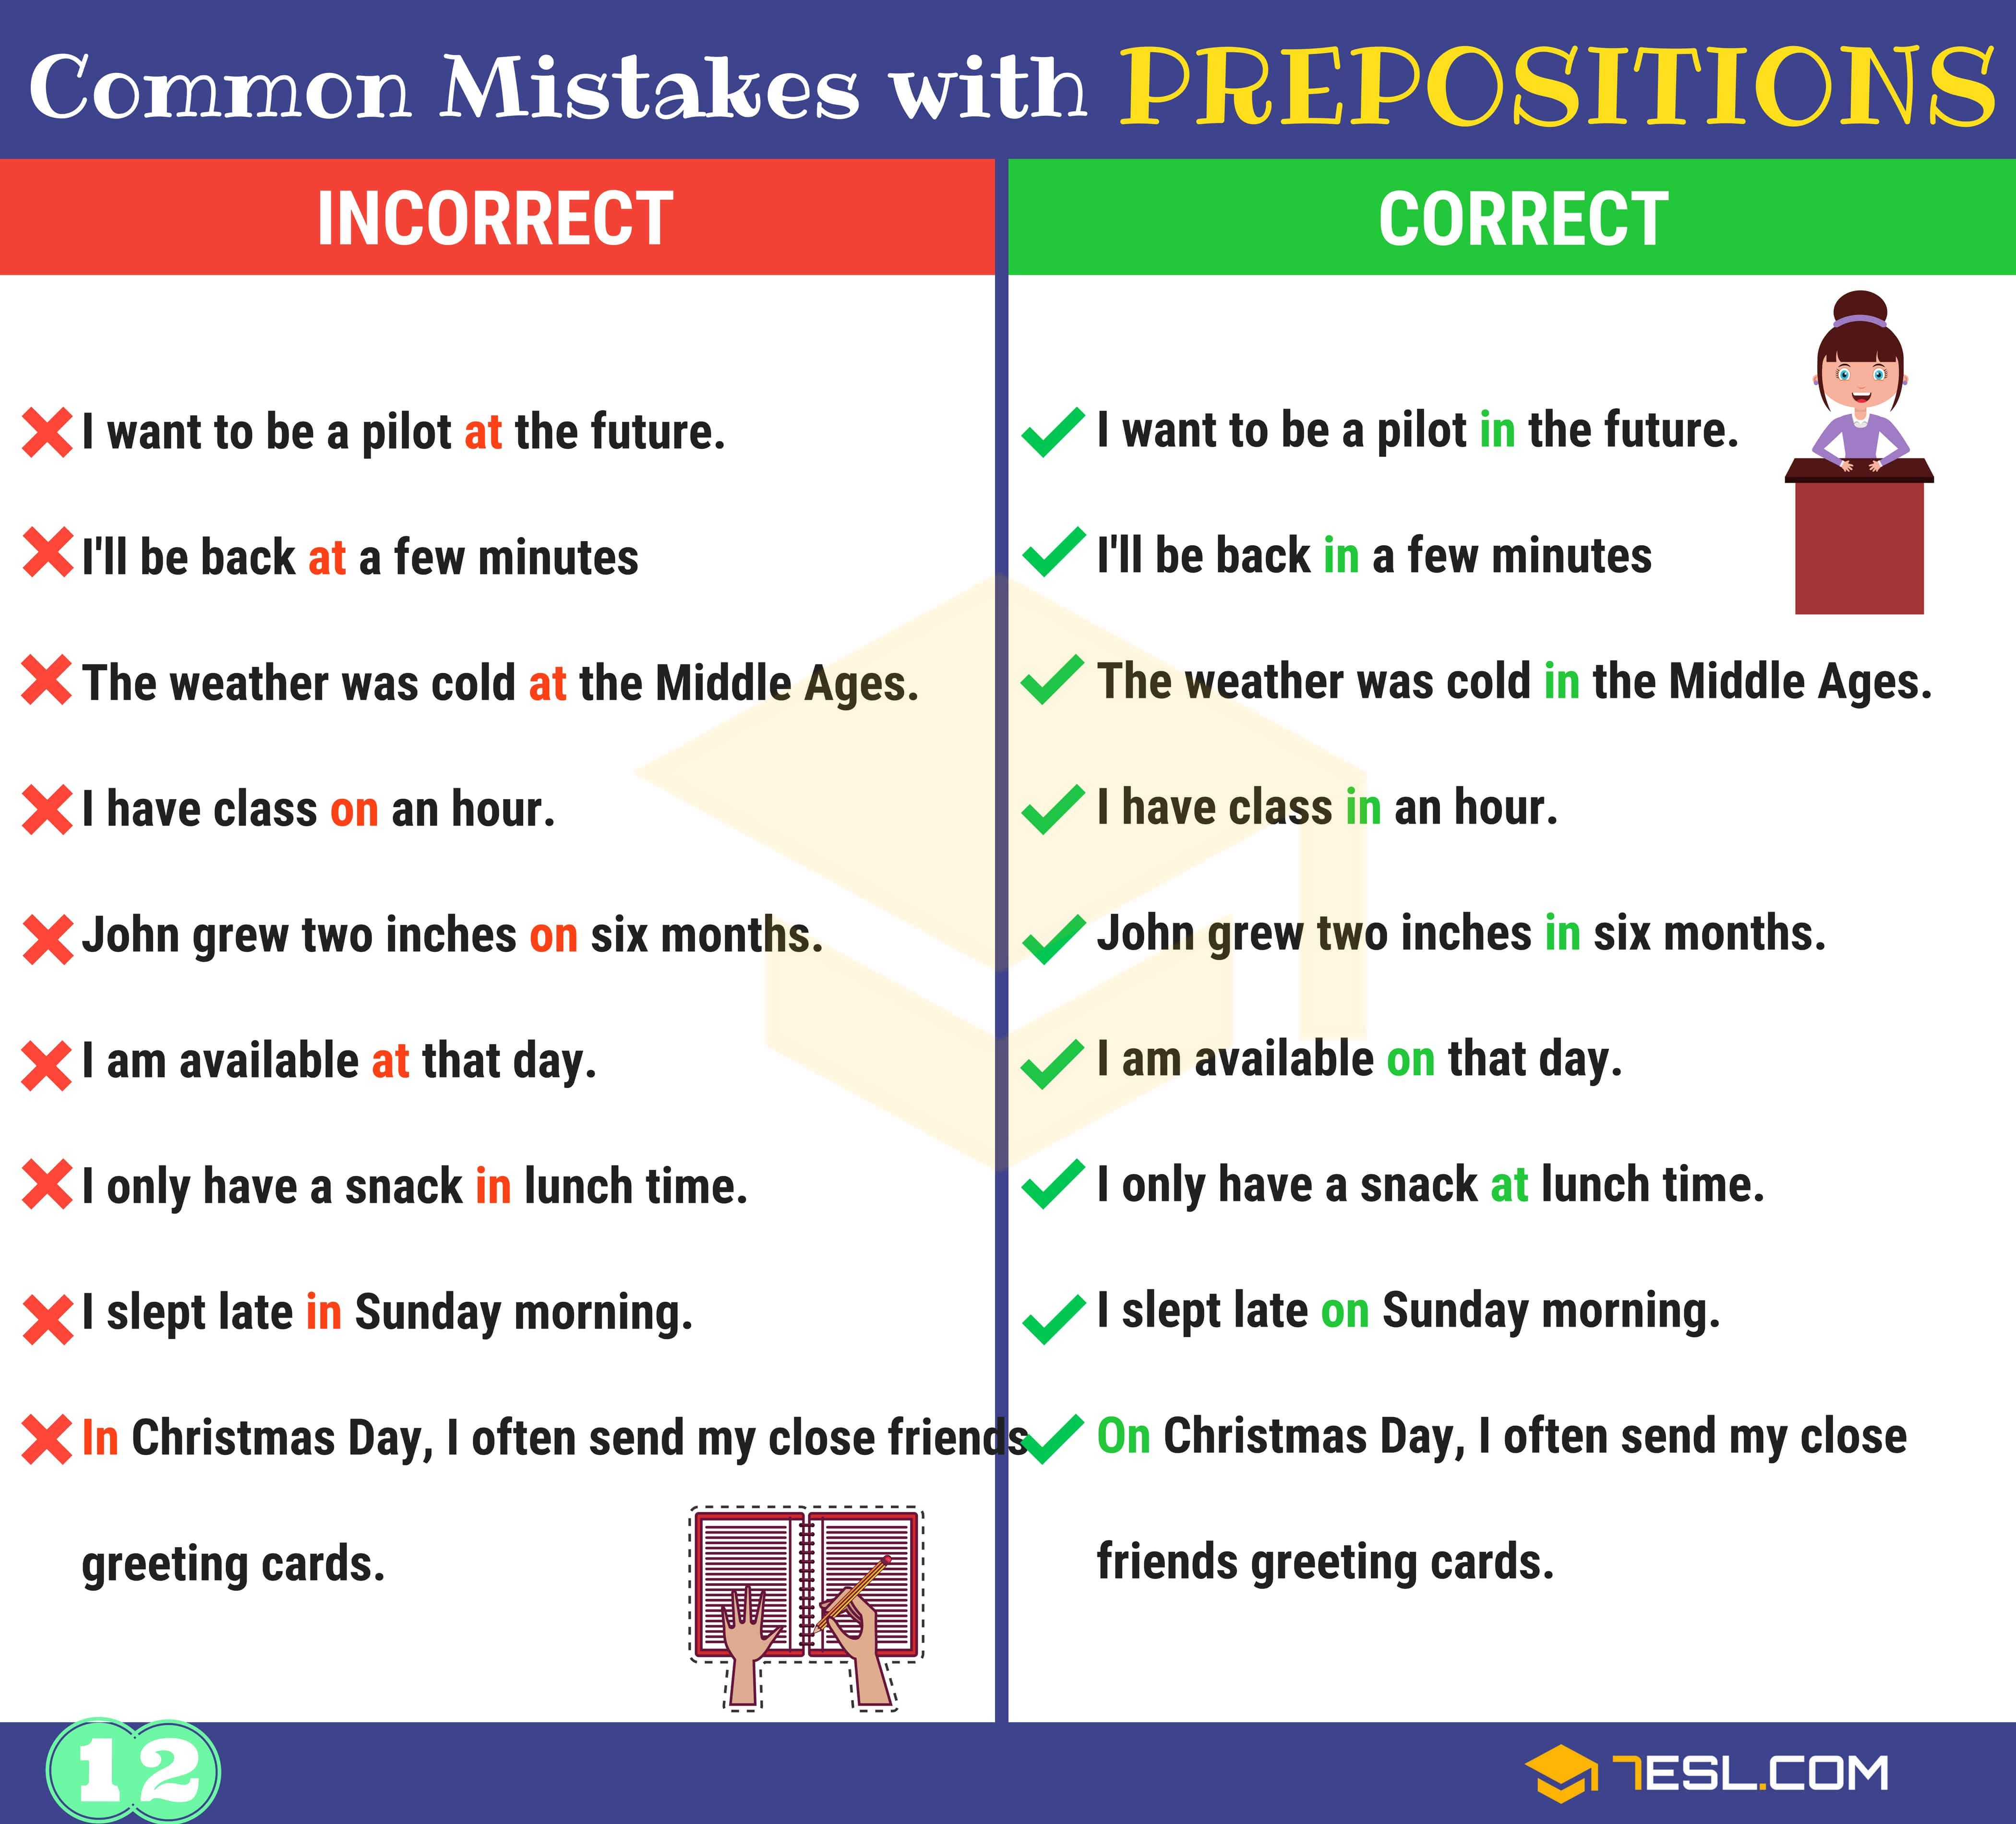 Preposition Errors 130 Common Mistakes With Prepositions 7 E S L Prepositions Learn English Teaching English Grammar